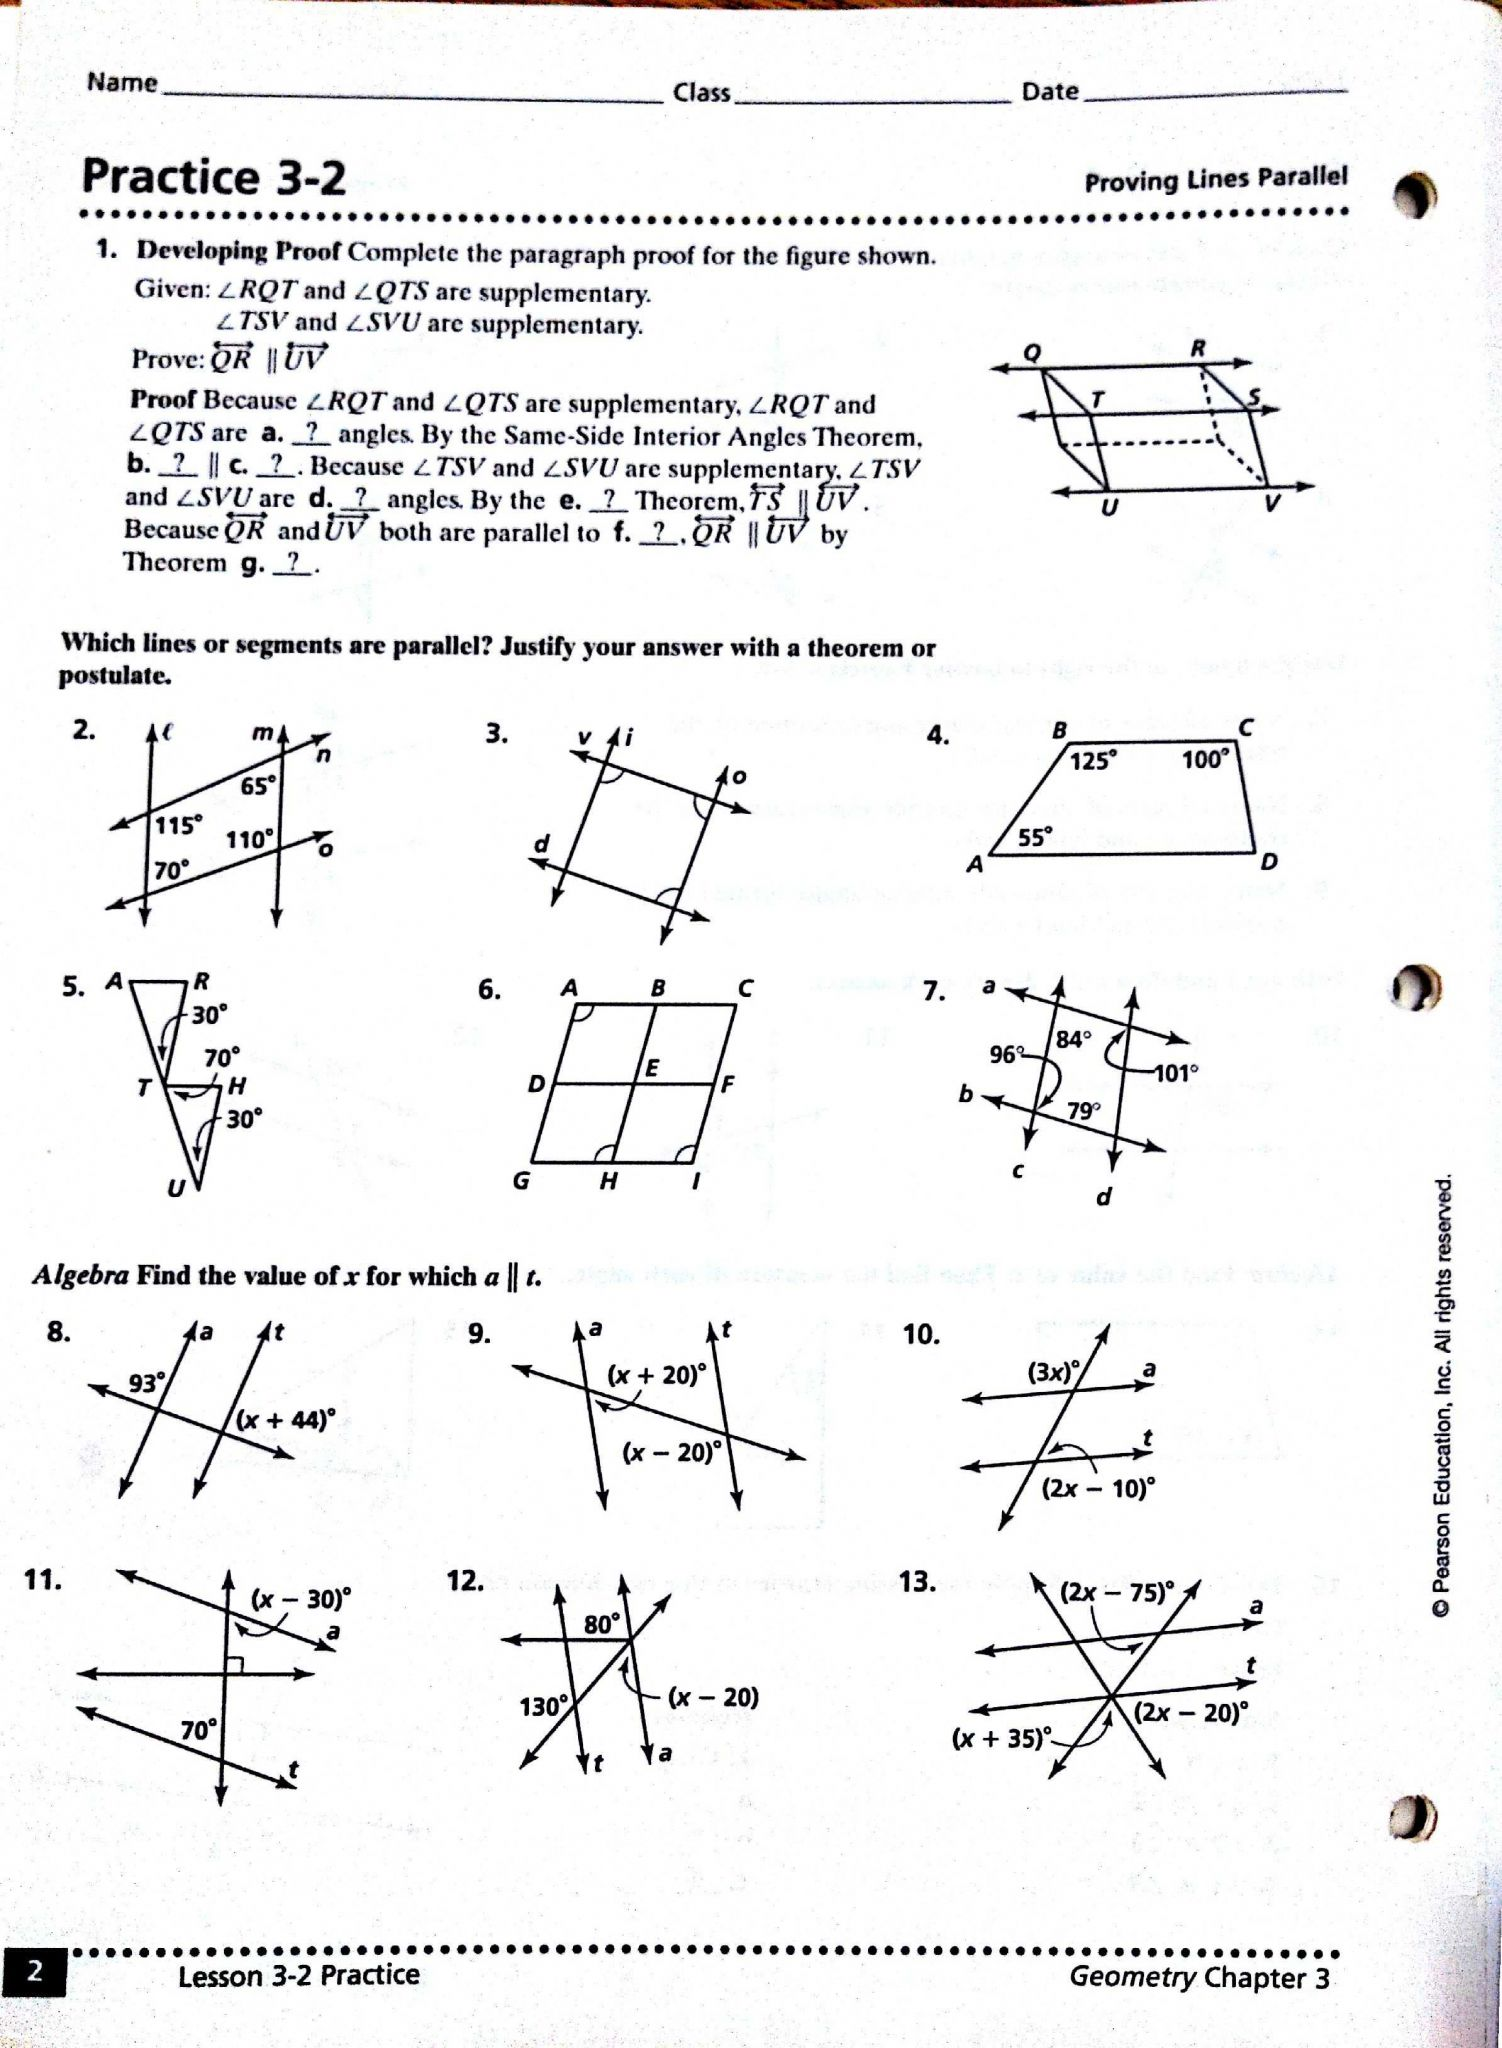 Limiting Reagent Worksheet 2 Along with Transparency Worksheet Answers Gallery Worksheet for Kids Maths